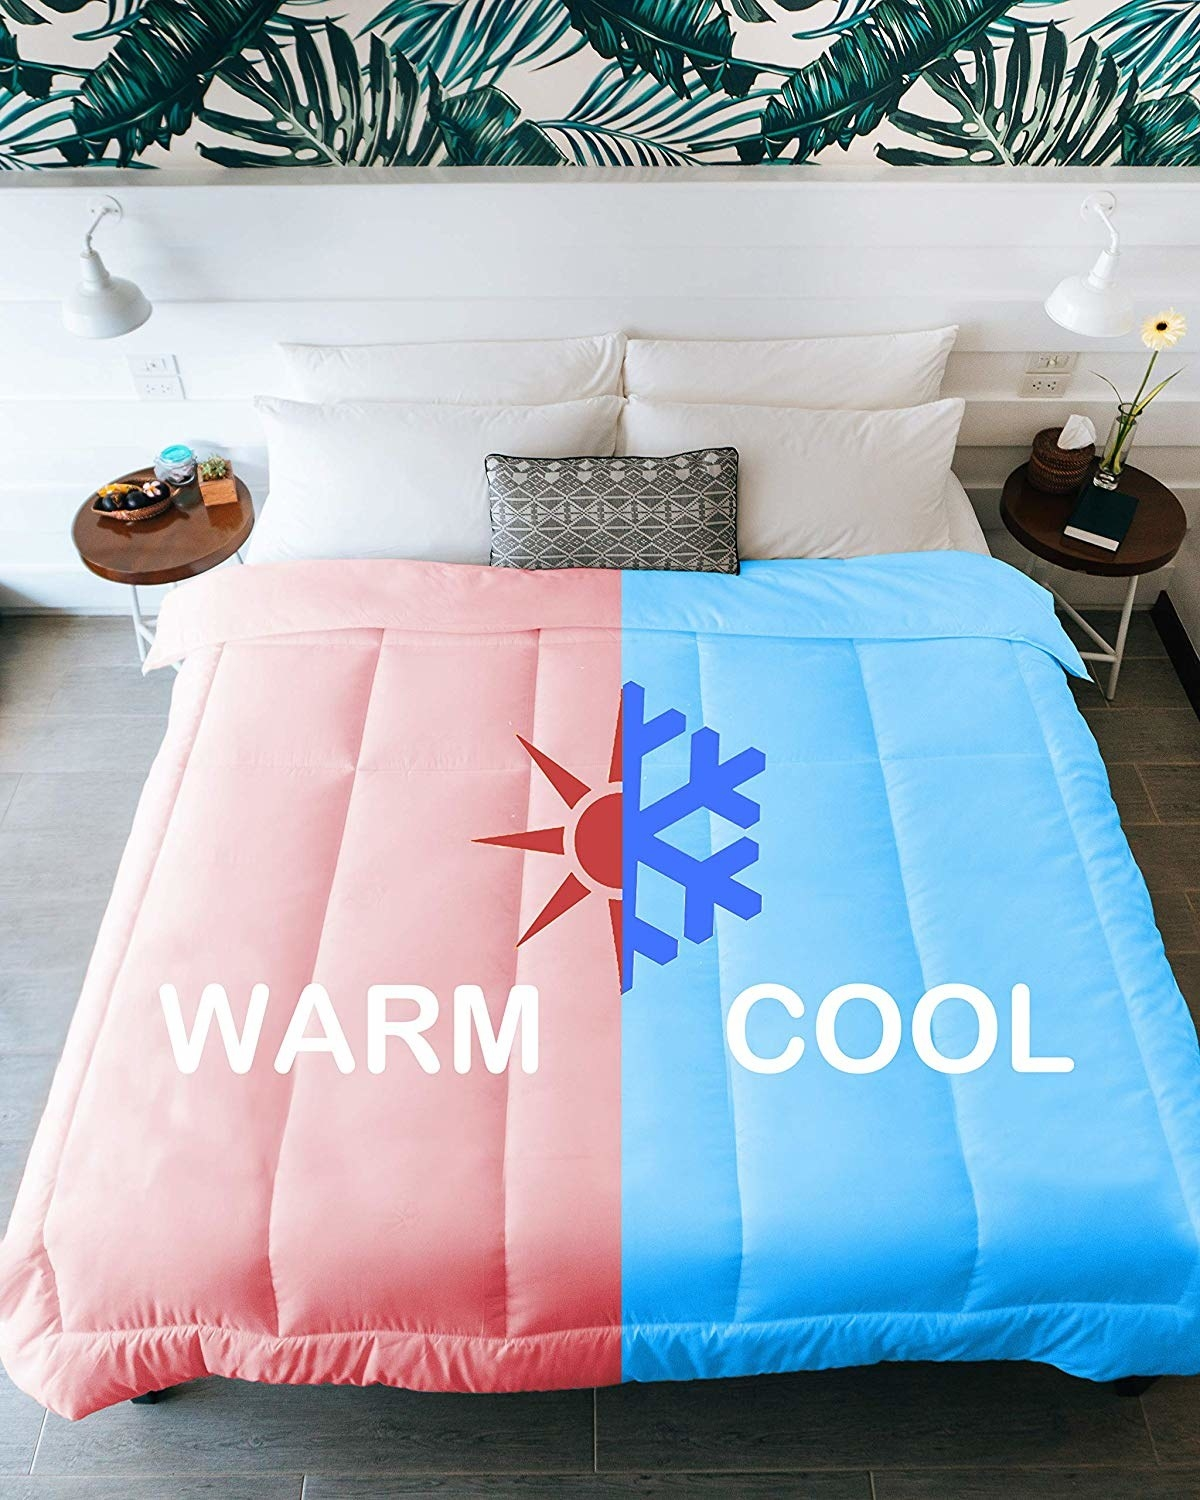 The warm and cool comforter on a bed